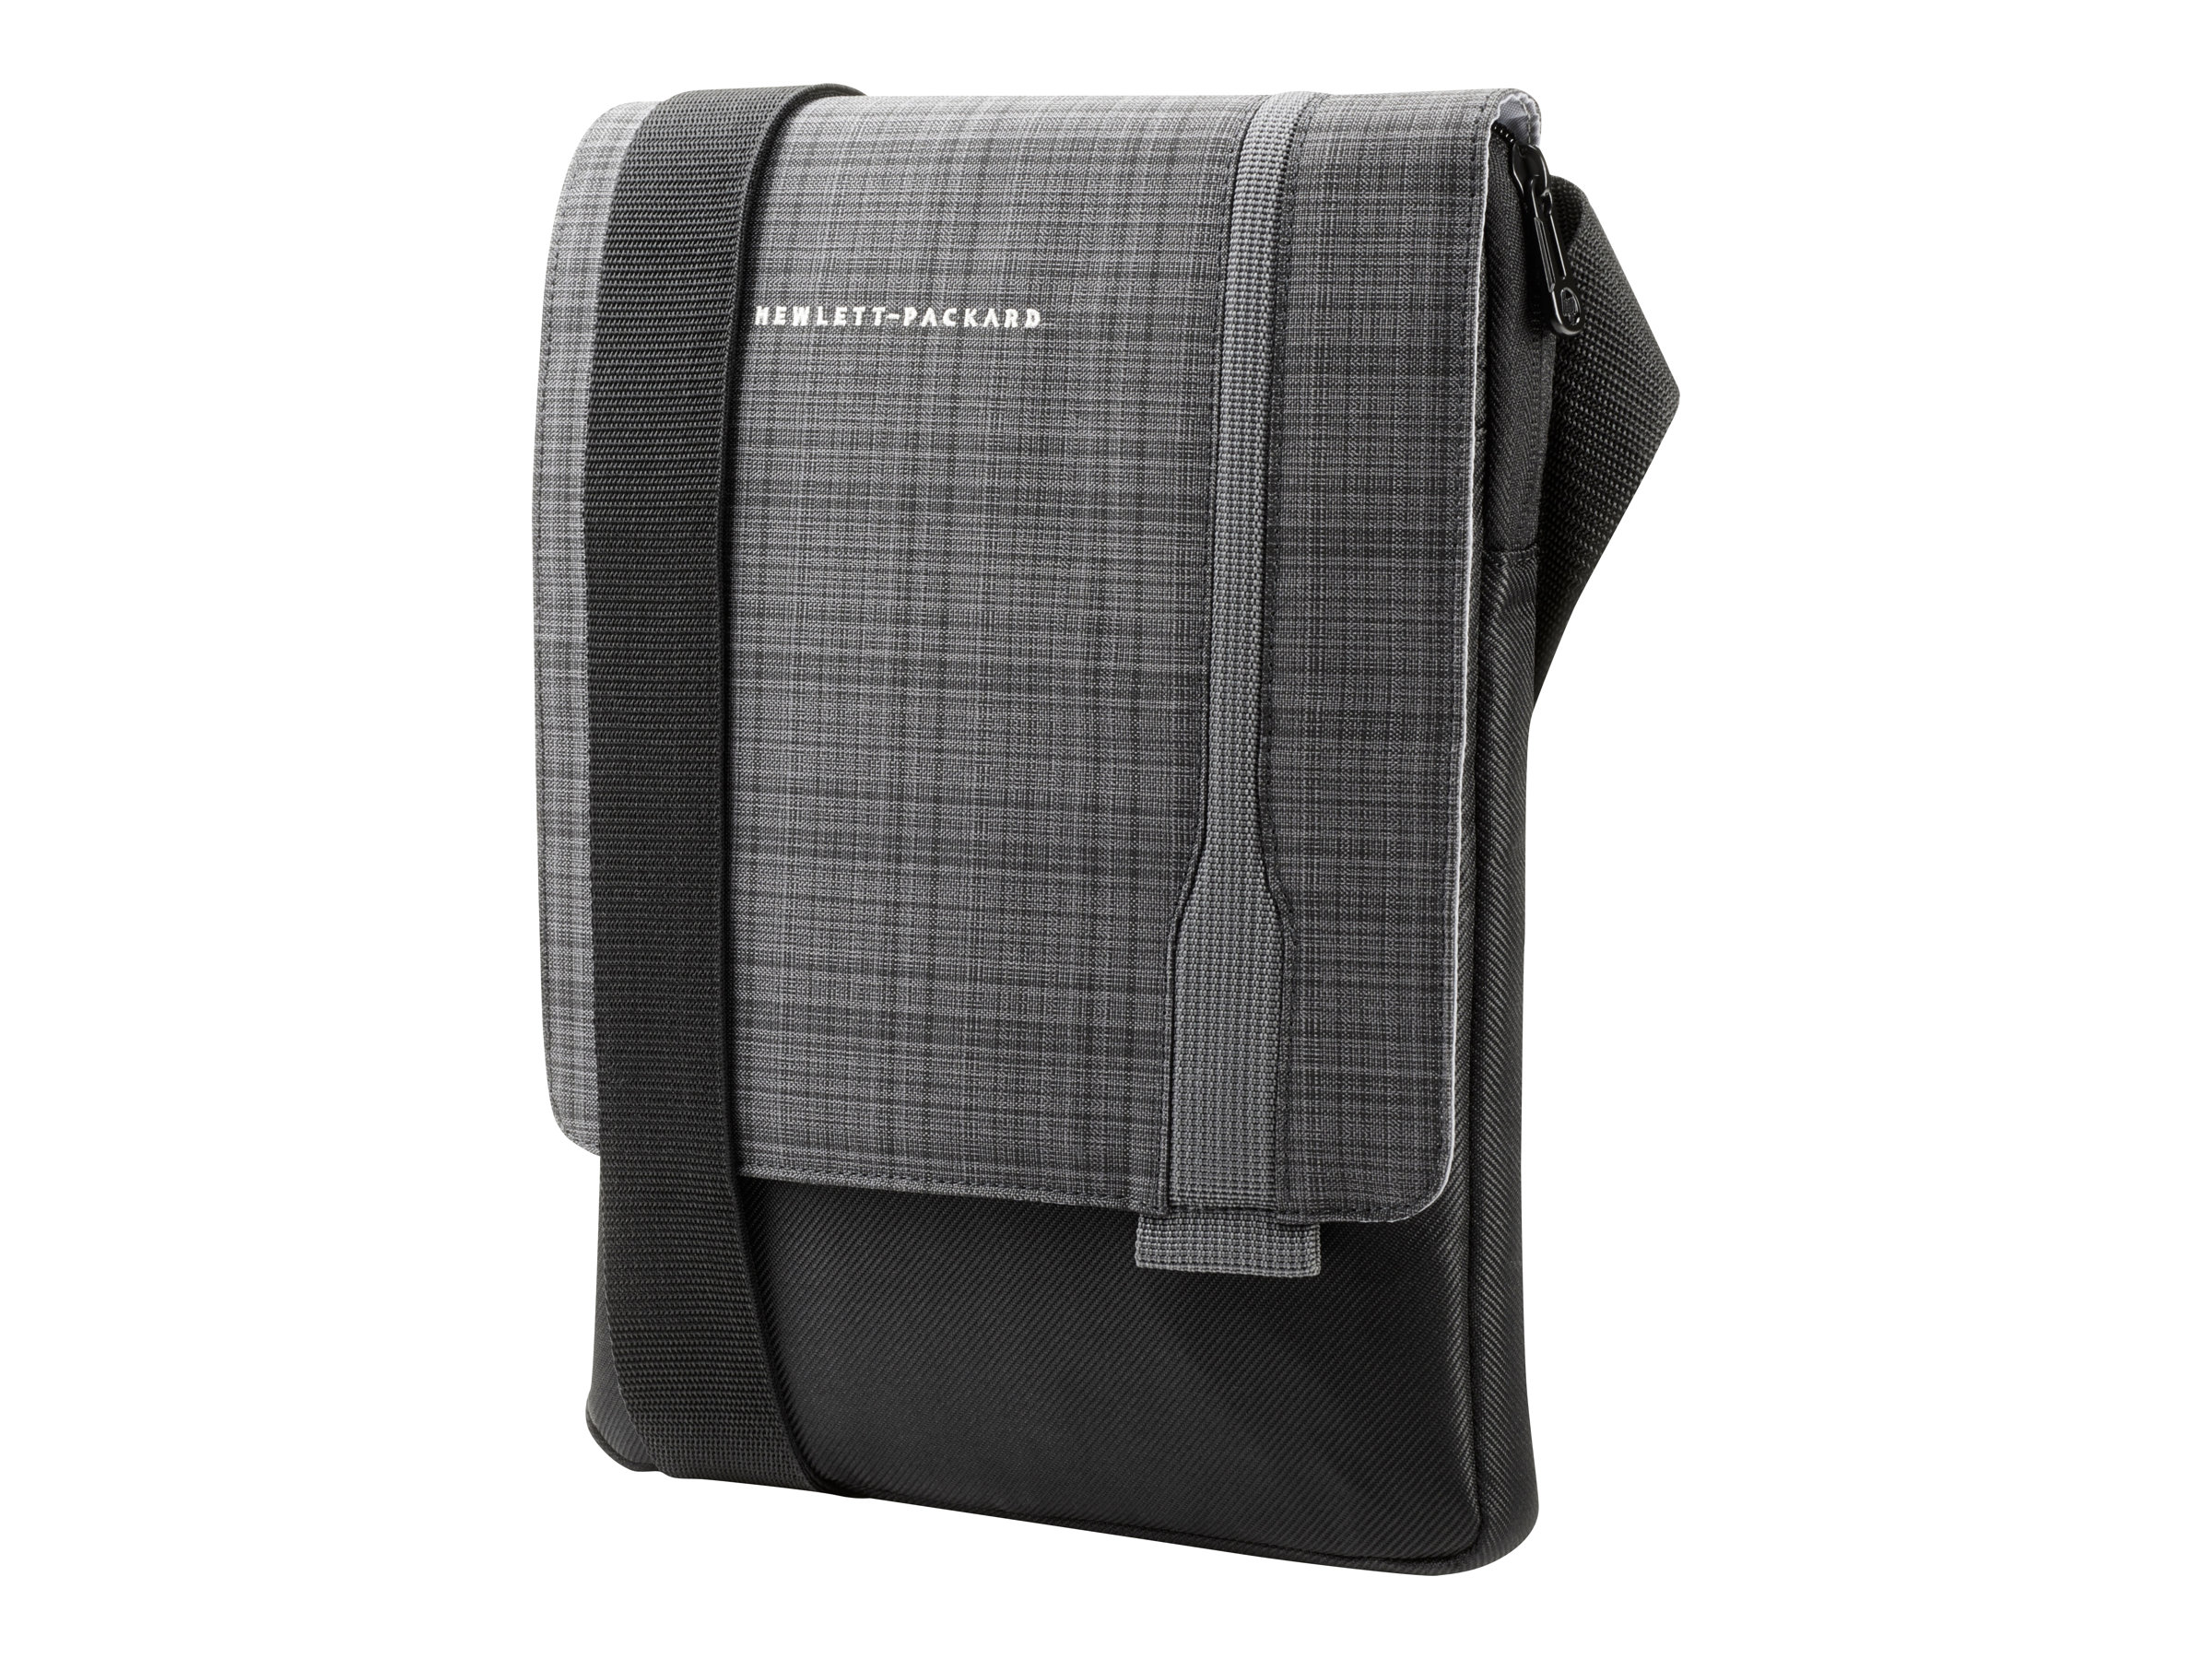 HP UltraSlim Tablet Sling - Tragetasche für Tablet - für Elite x2; EliteBook Folio 1020 G1; ElitePad 1000 G2; Pro Tablet 608 G1, 610 G1; x2